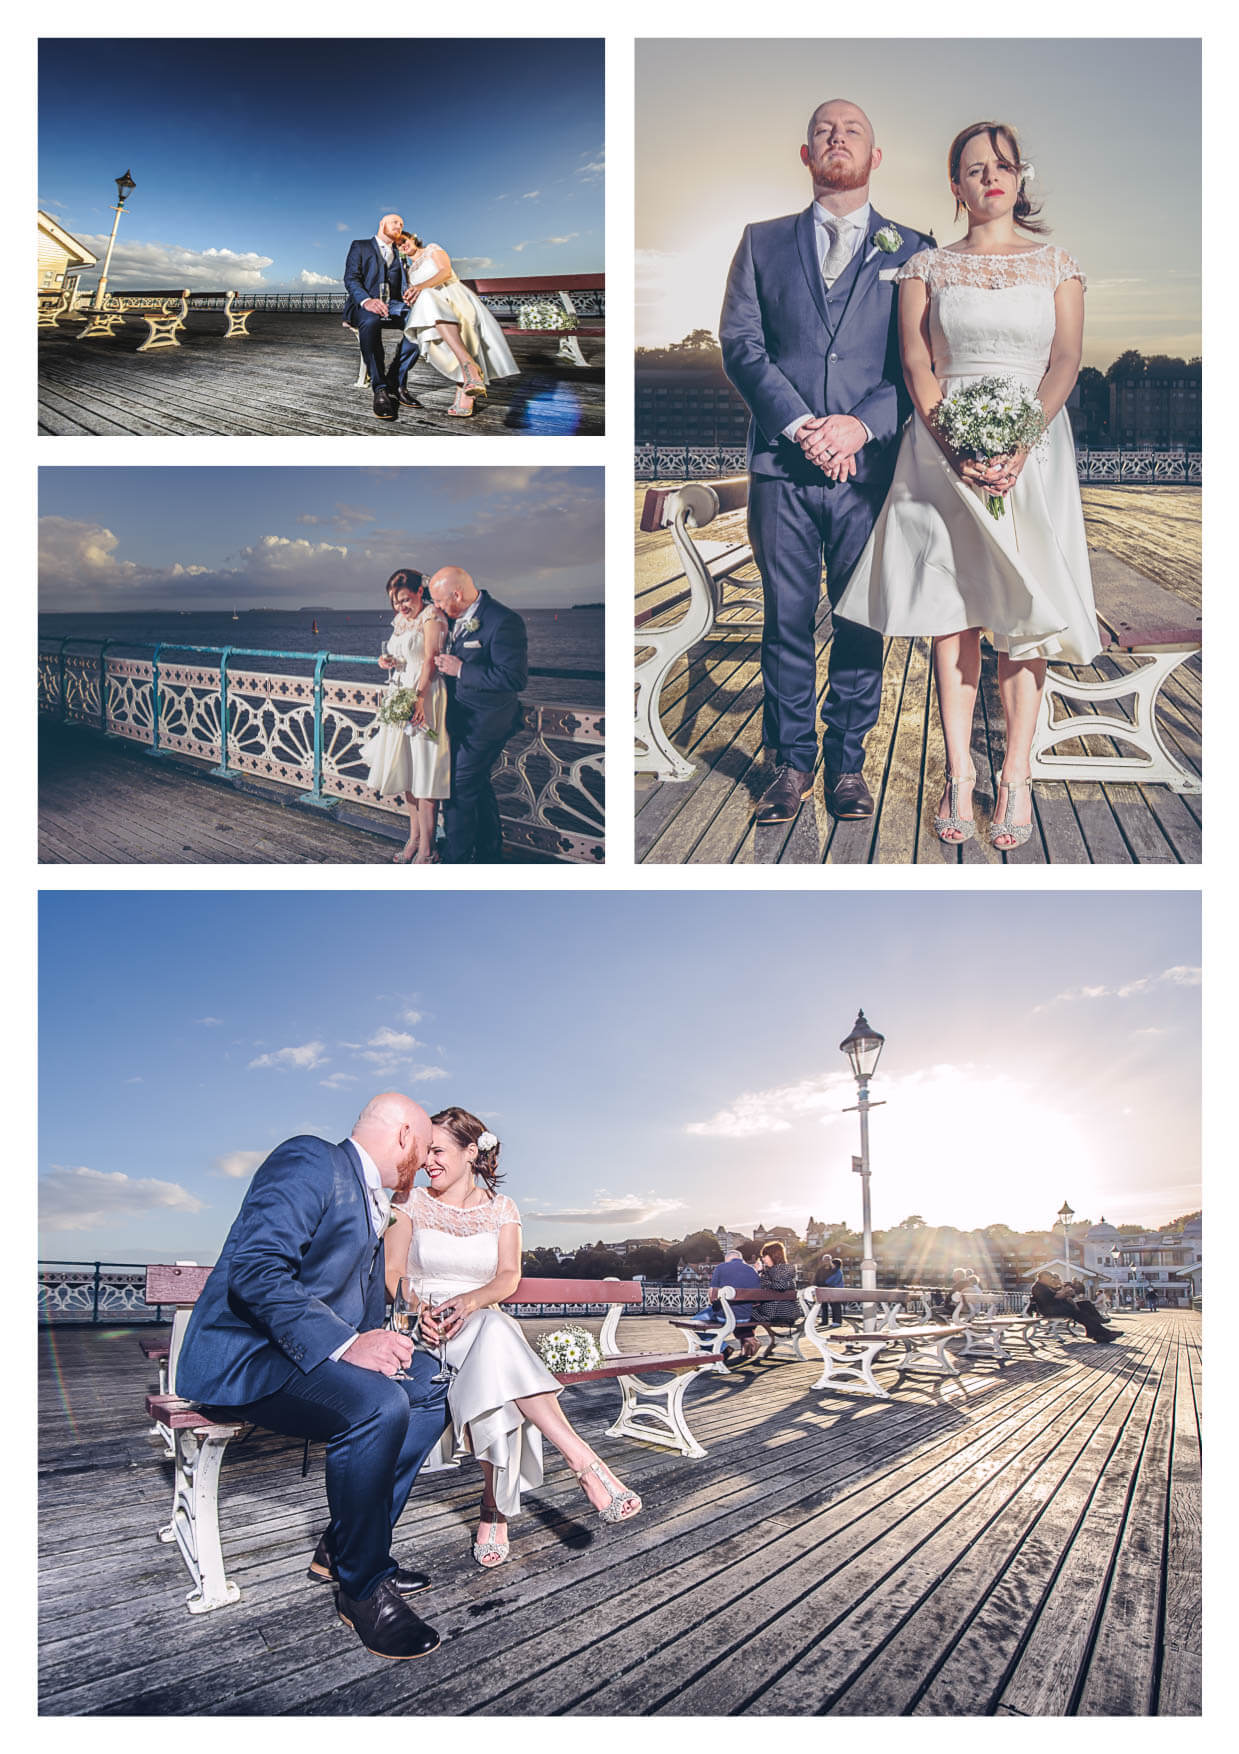 Images of Bride and groom onPenarth Pier Pavilion Wedding Photographers